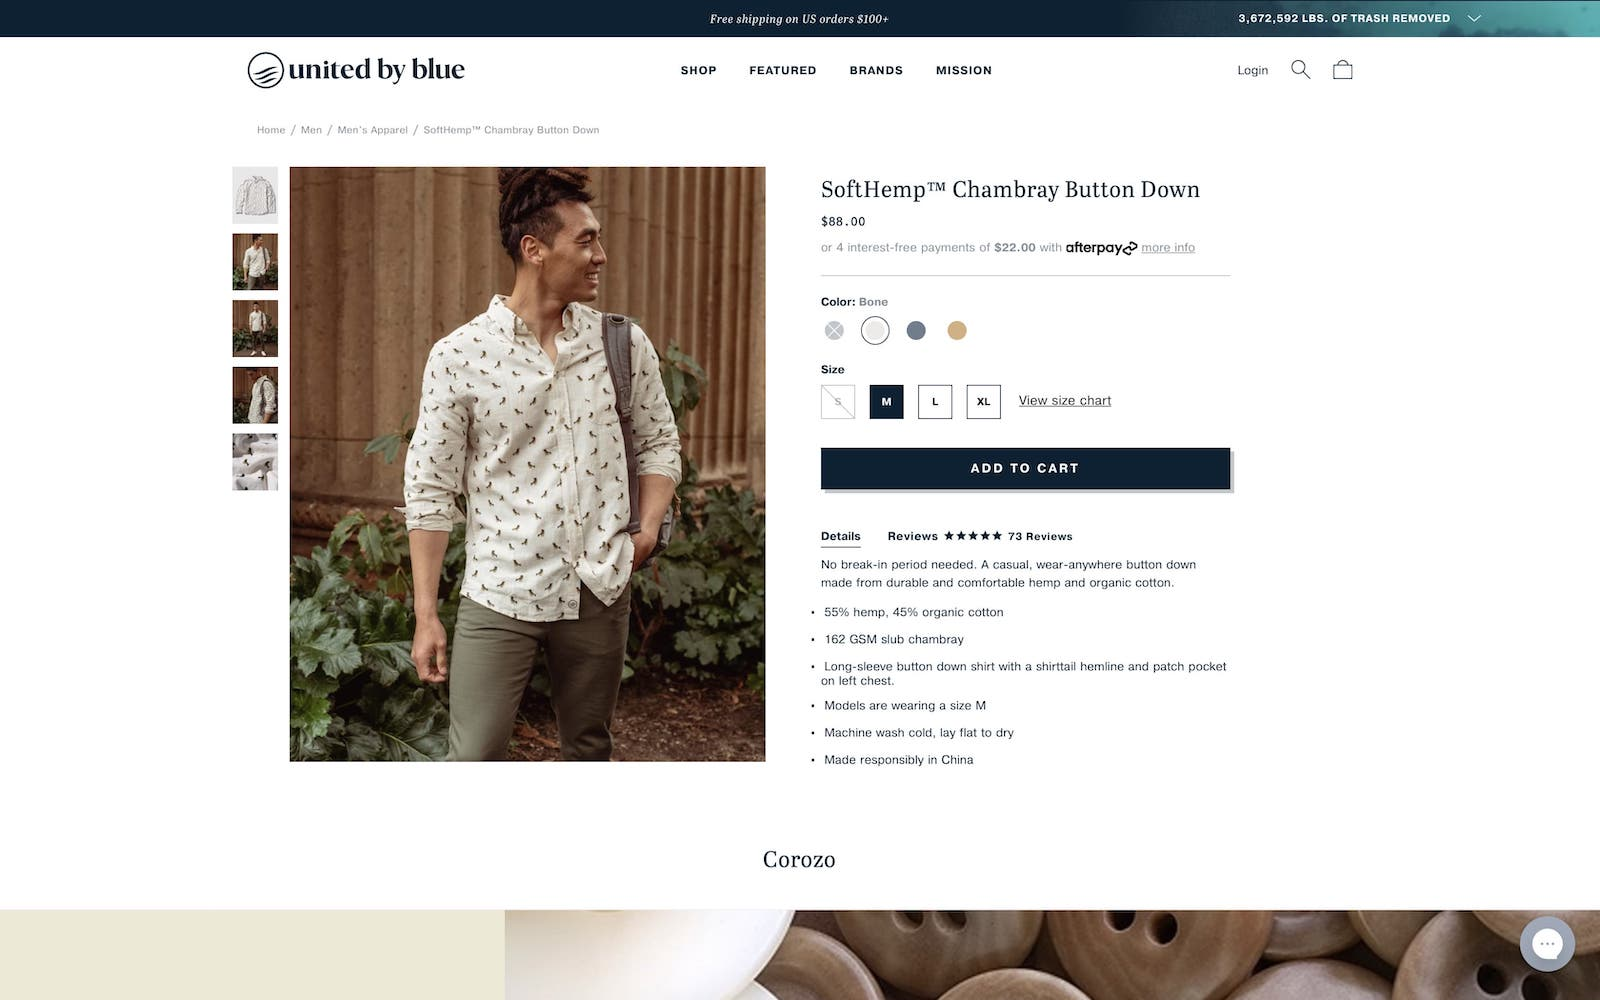 screenshot of united by blue mens shirt product page